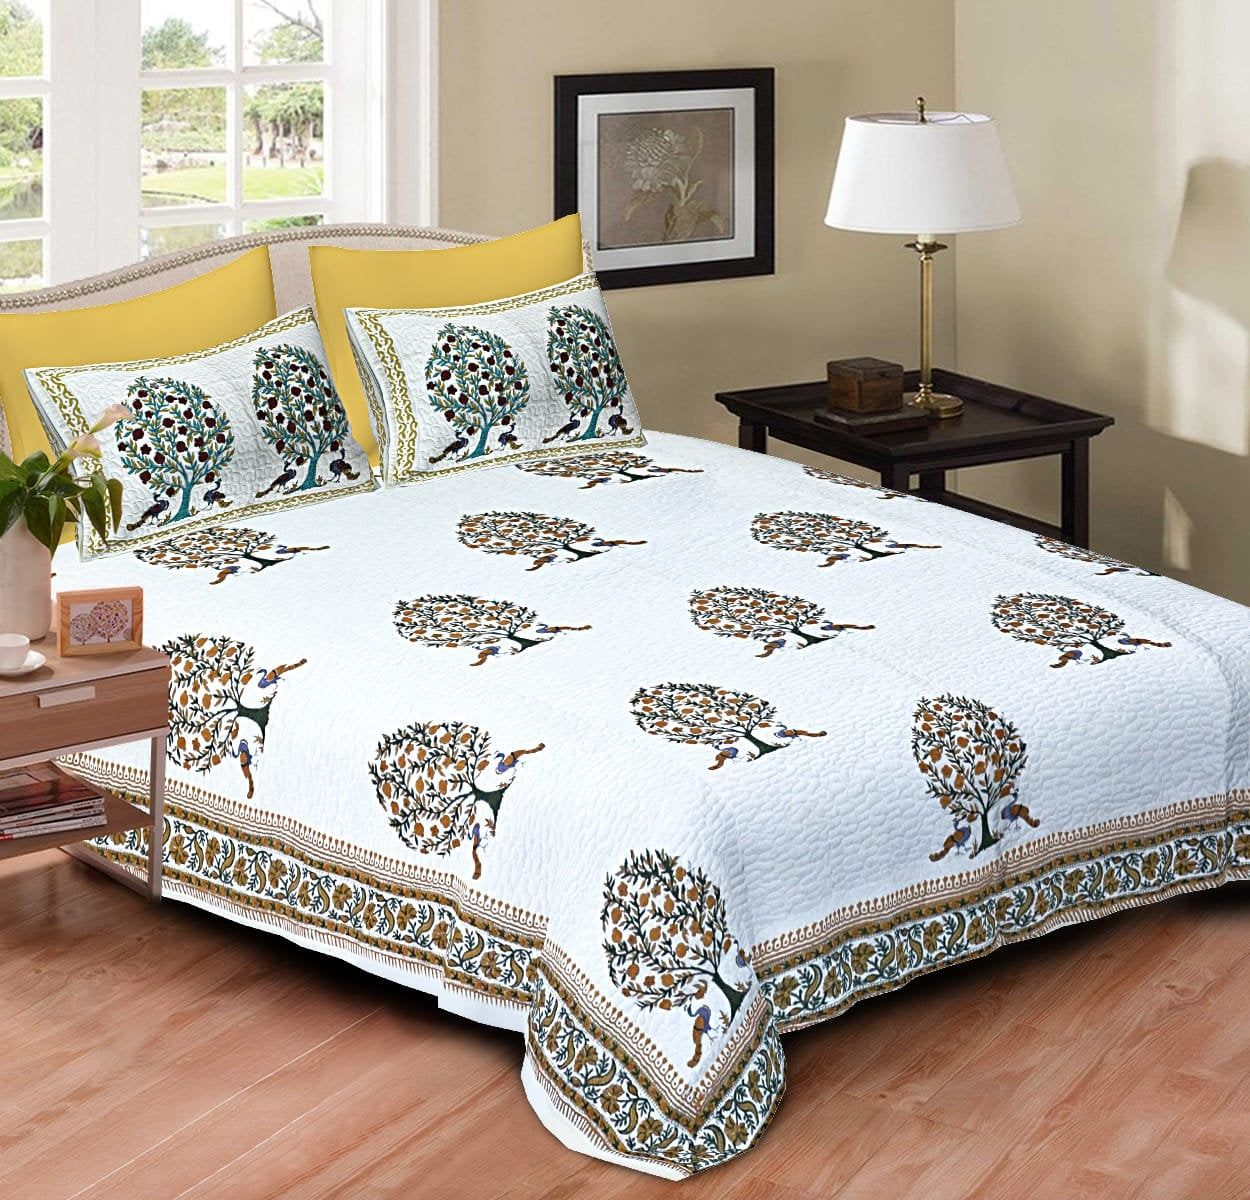 Indian Printed Bed Sheet Set Luxury Cotton Bedspread